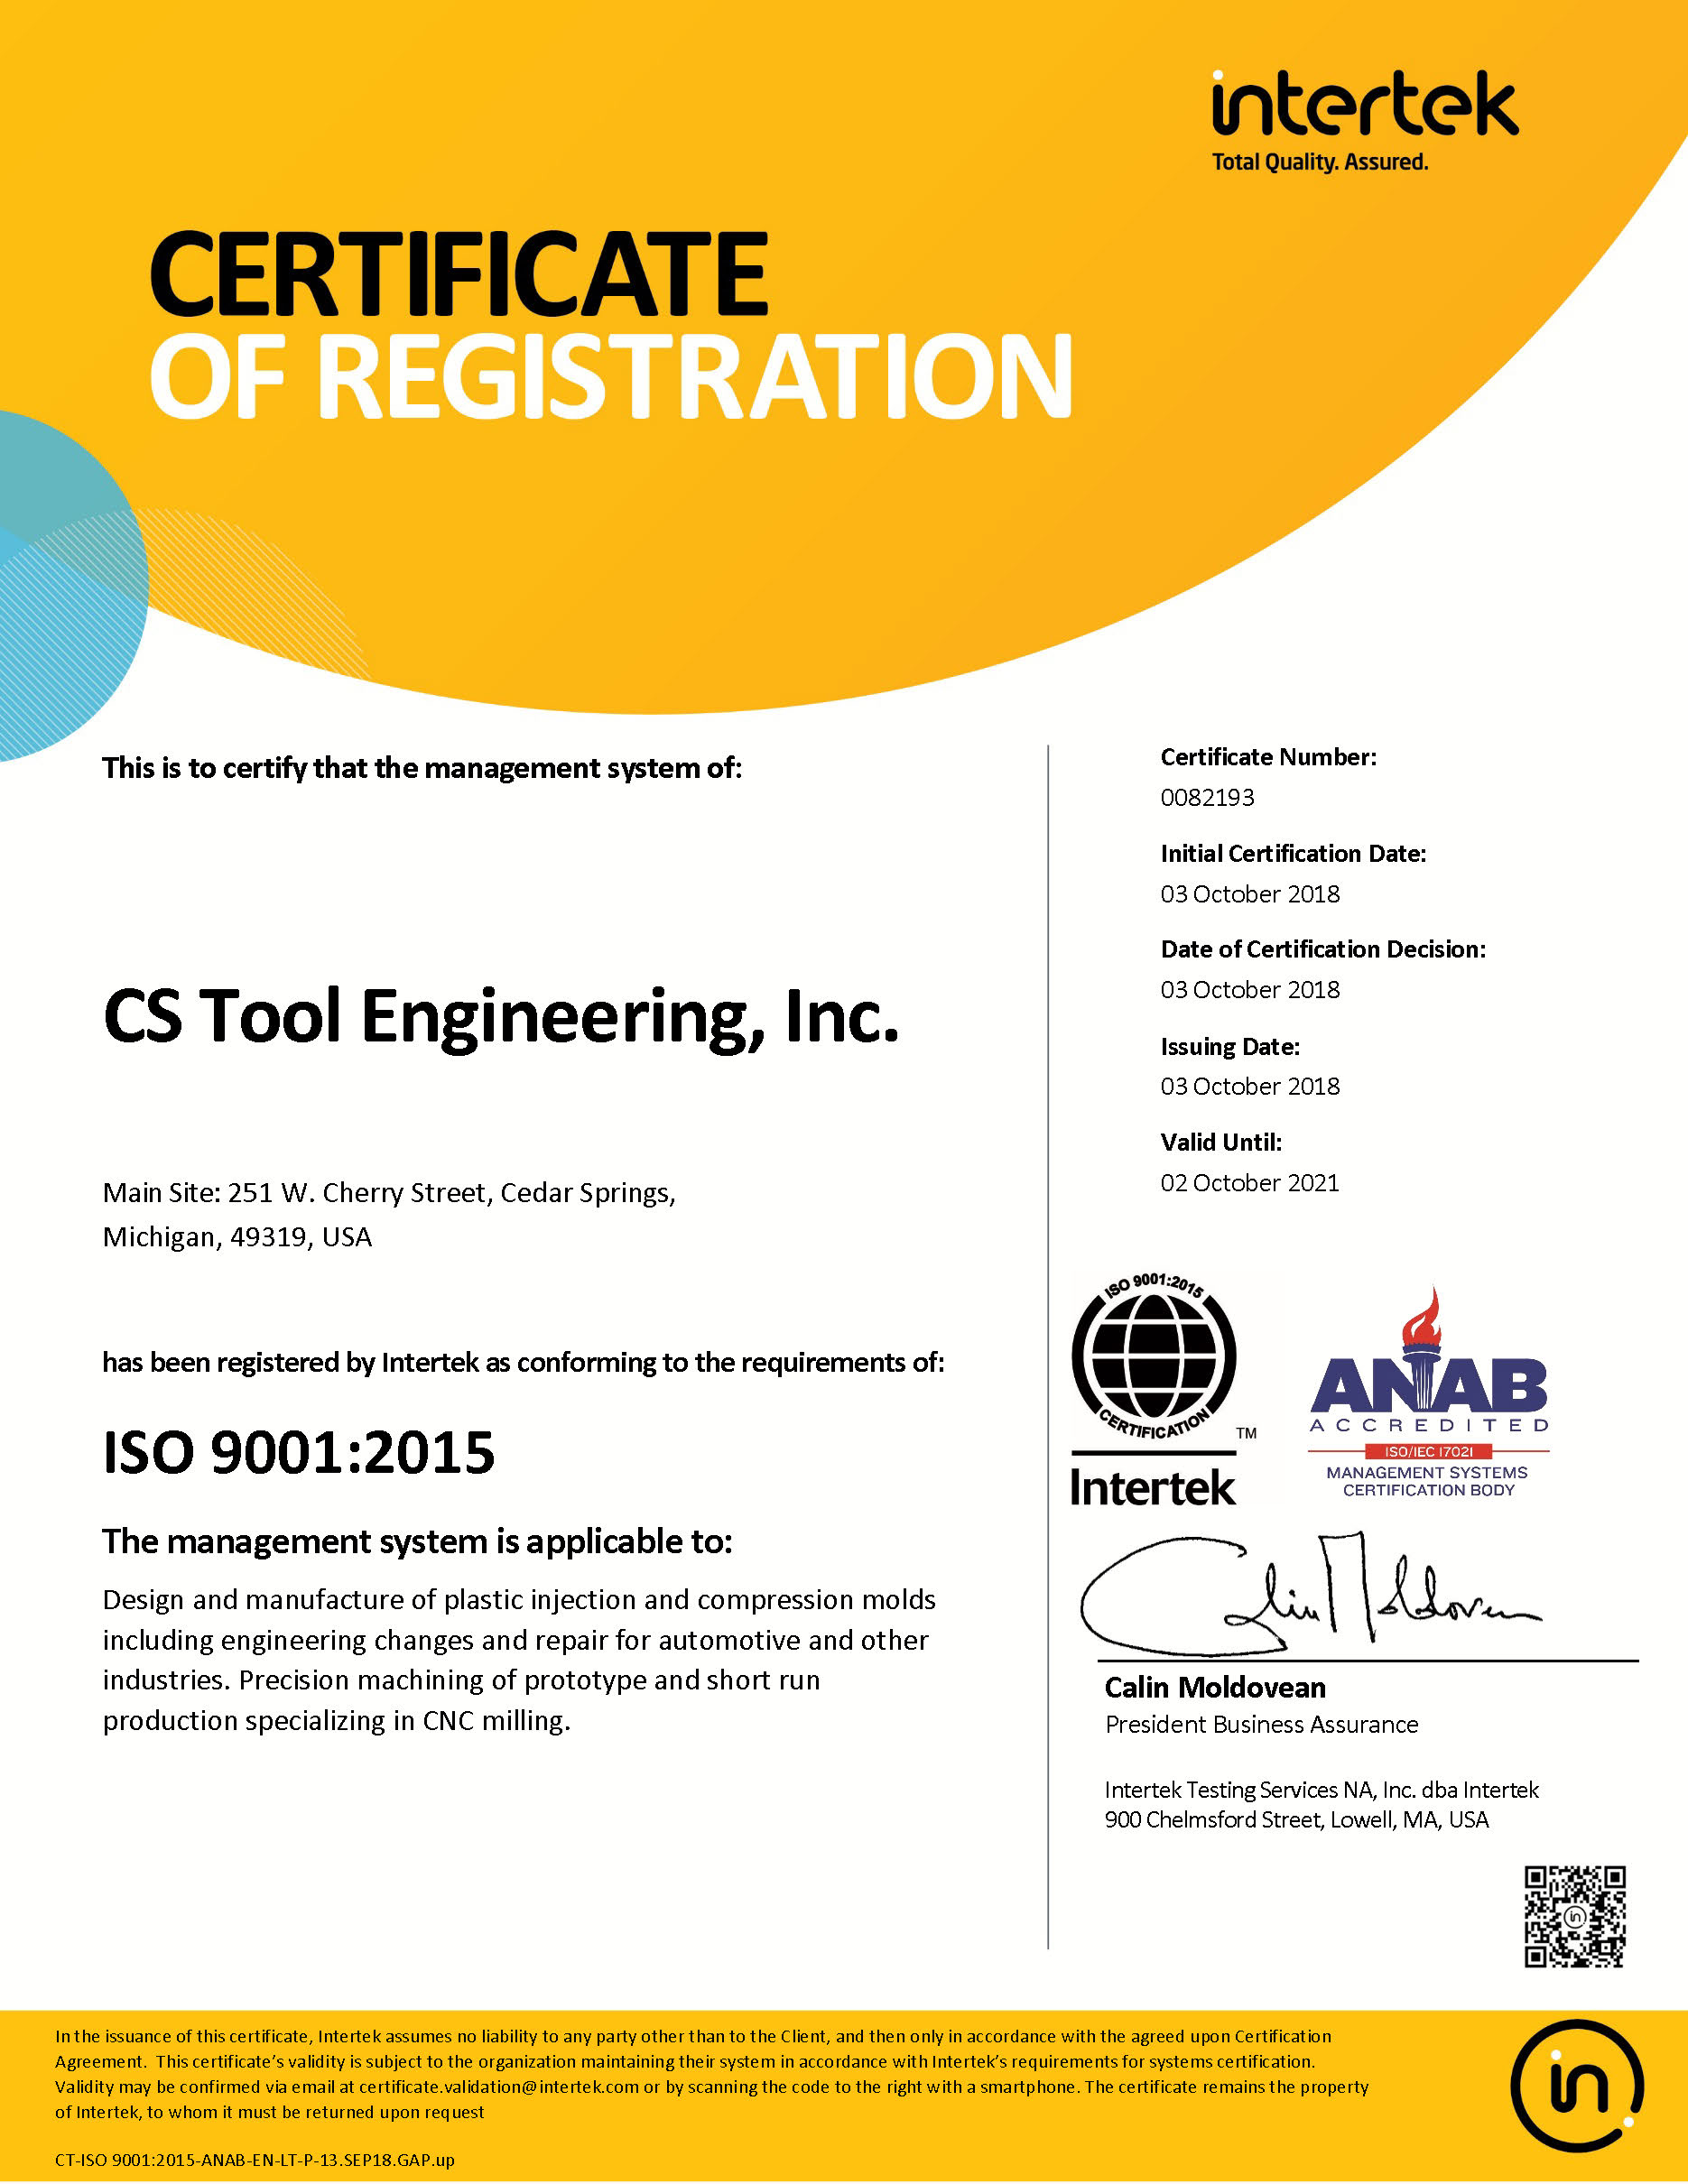 CS Tool Engineering ISO 2001:2015 Certificate